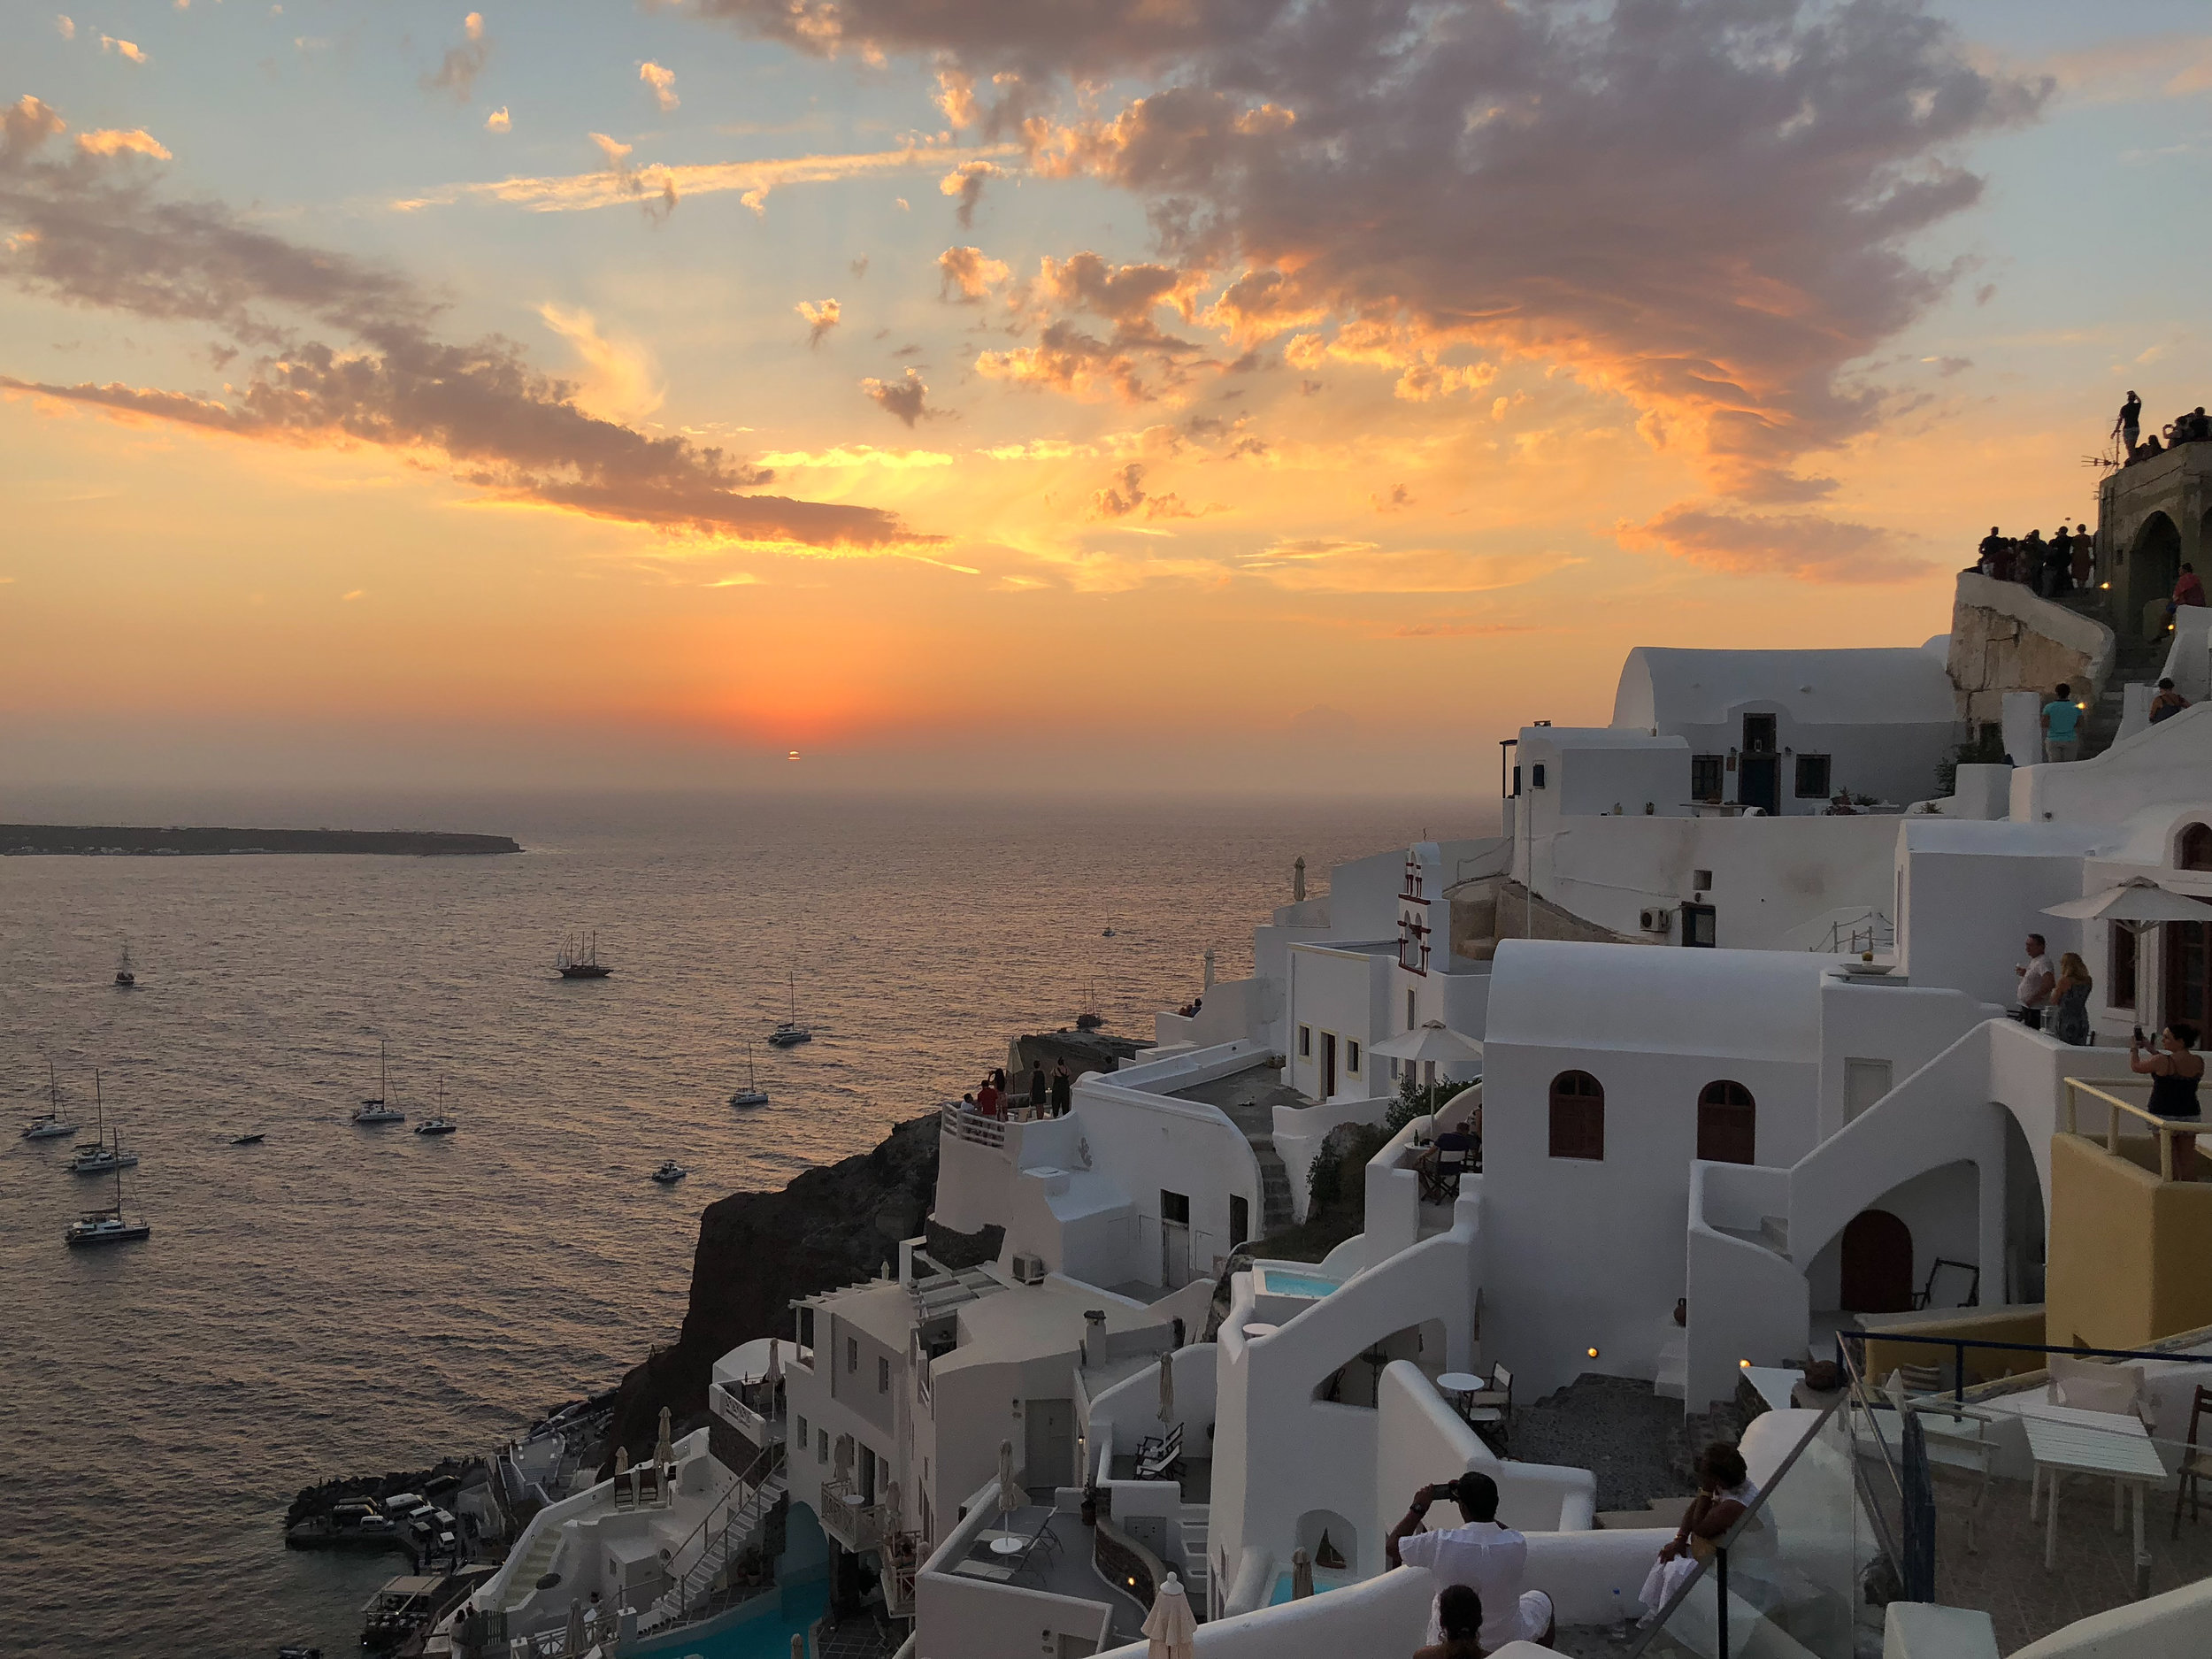 The sunset along the caldera in Oia